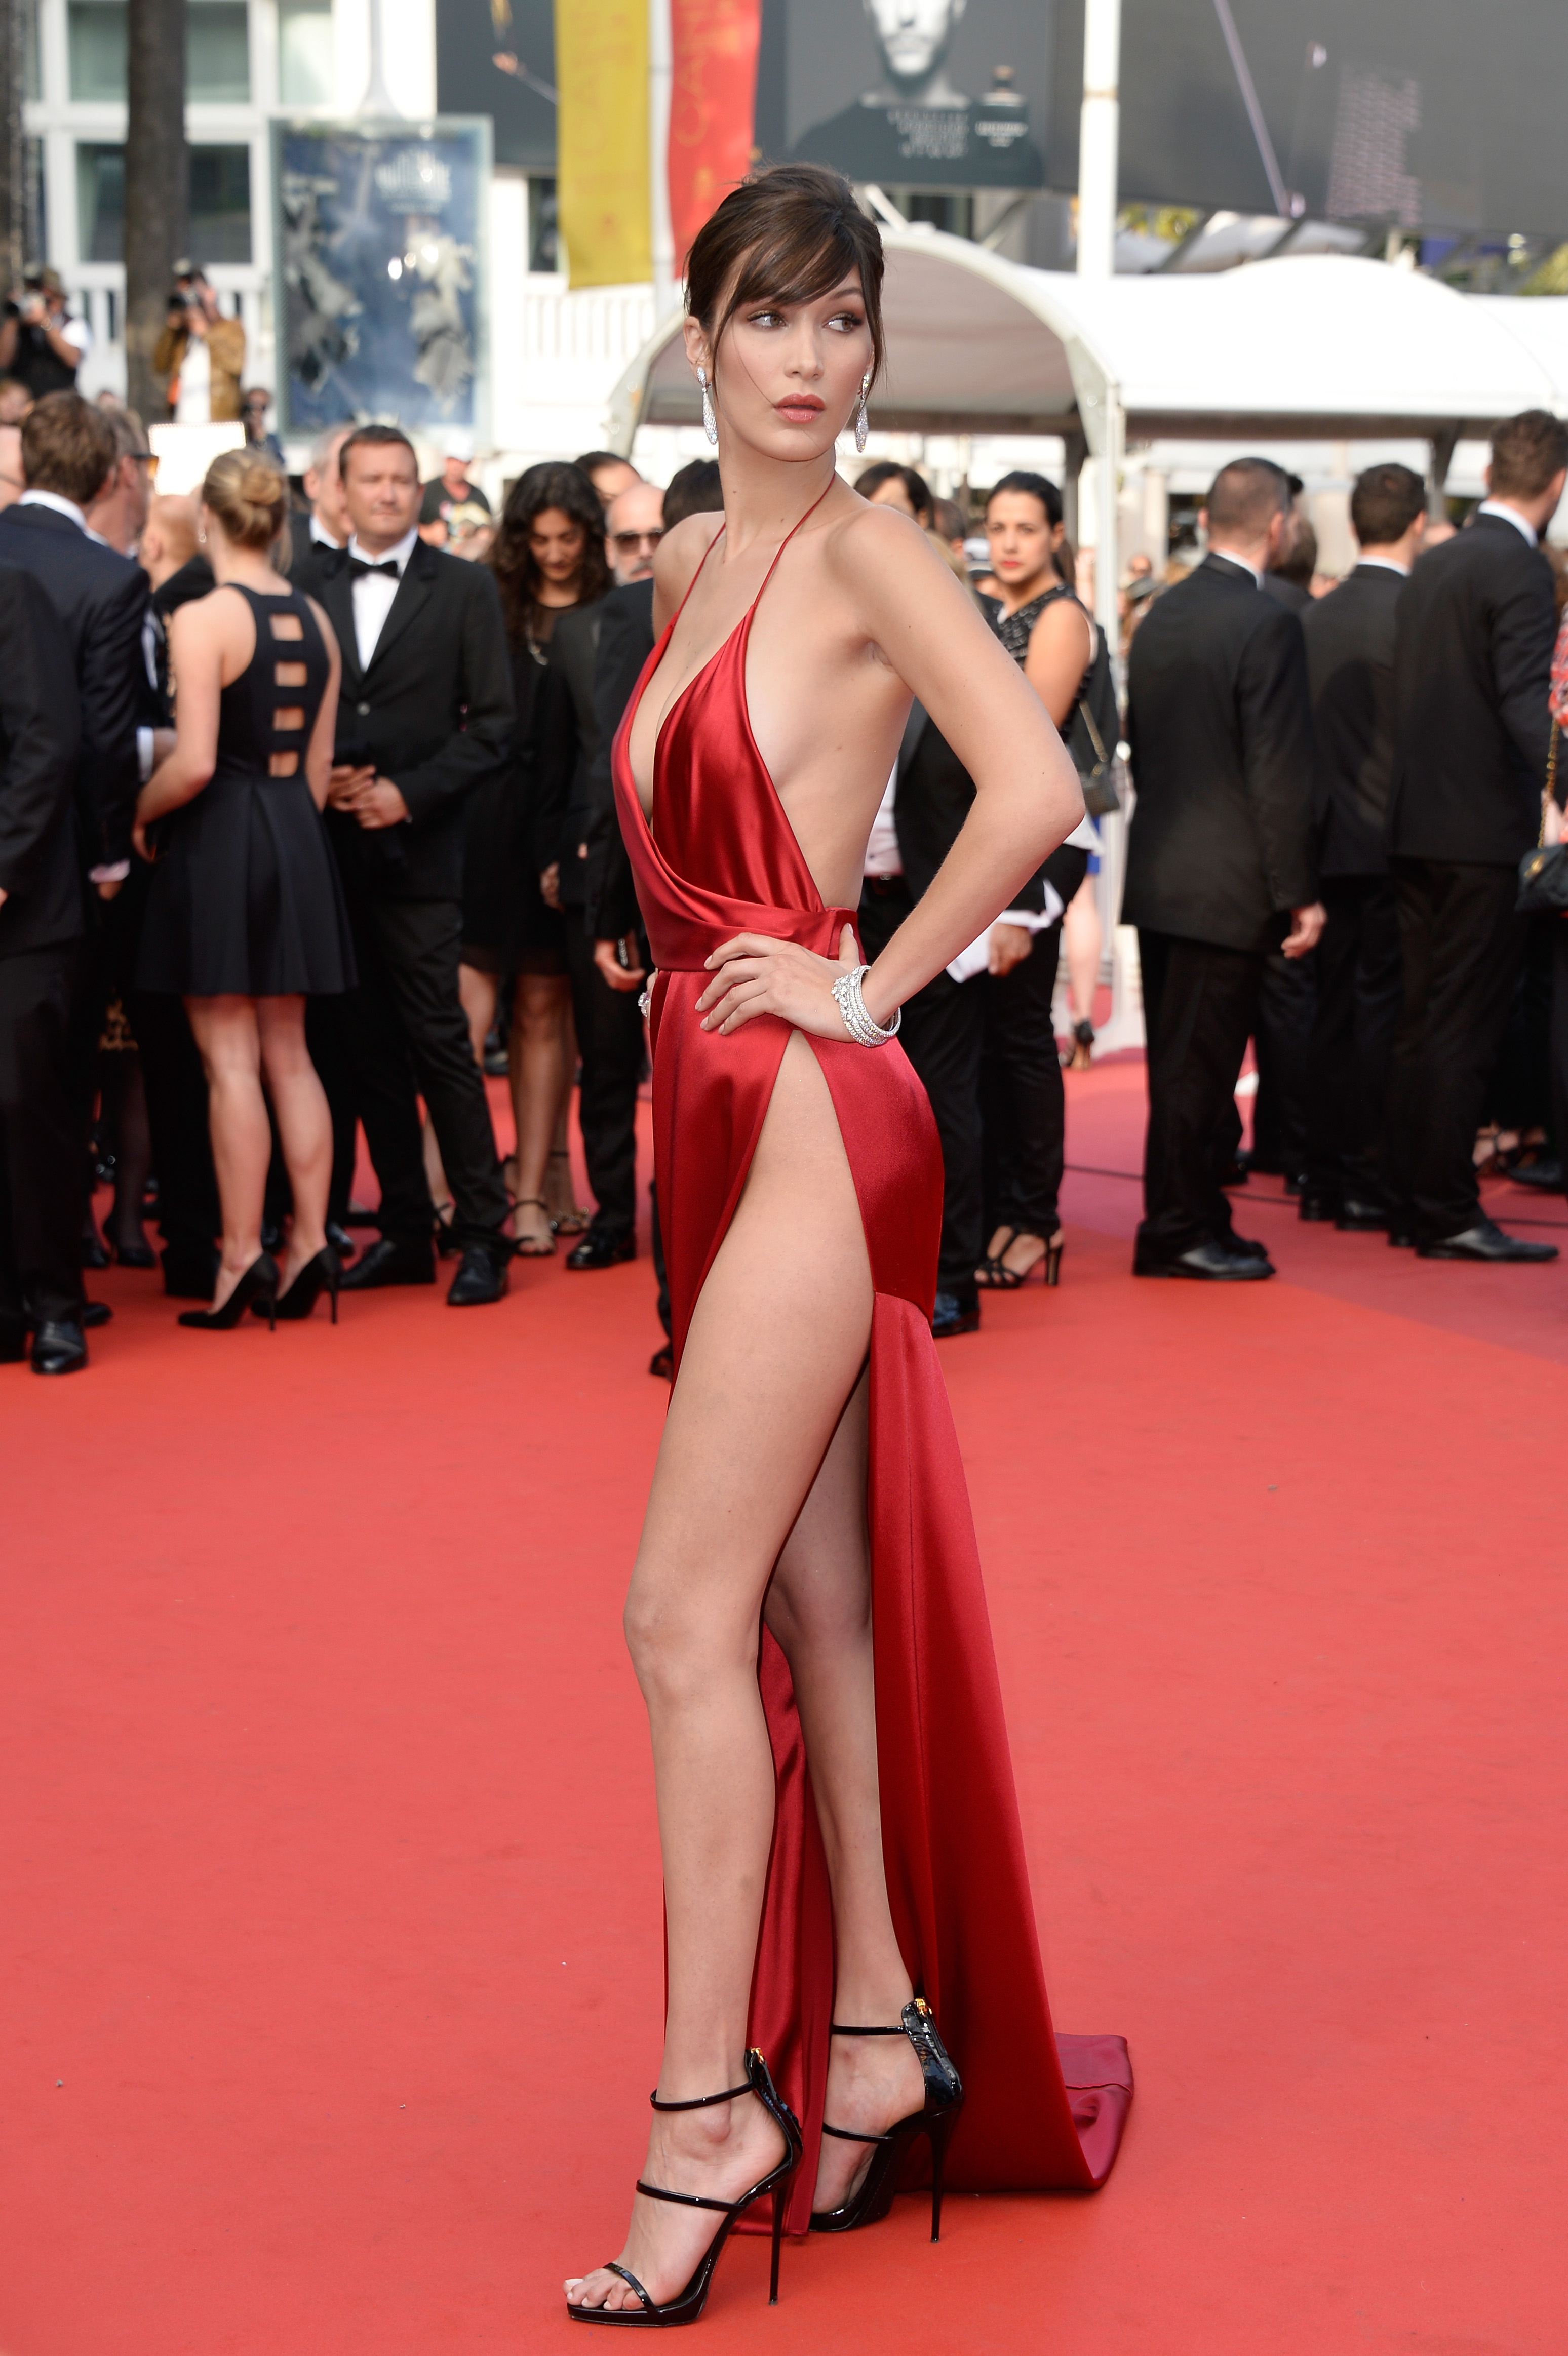 bella hadid in a red dress on the red carpet at cannes 2016